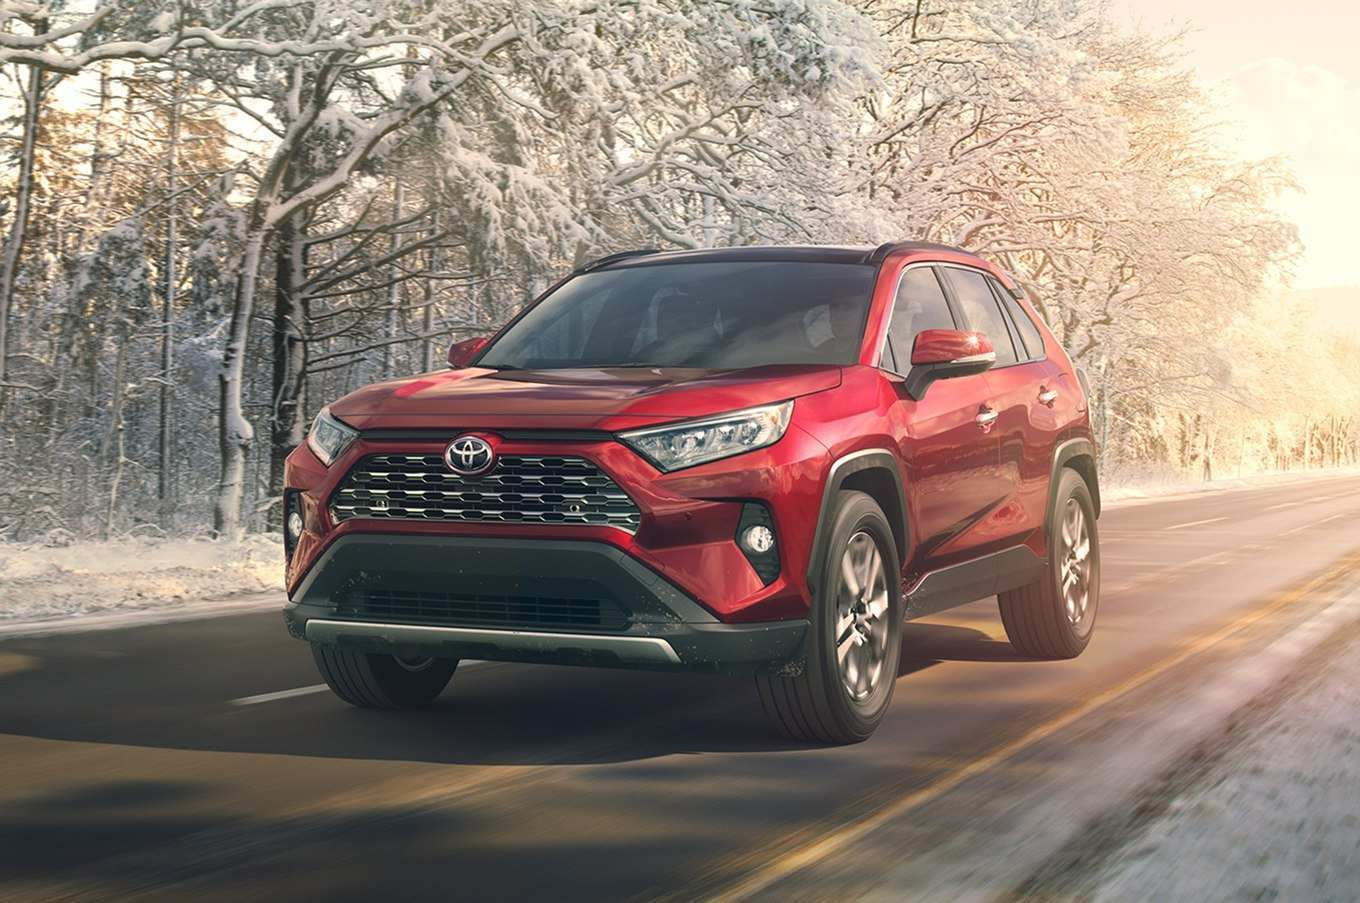 80 Gallery of 2019 Toyota Rav4 Specs Picture Release Date And Review New Review with 2019 Toyota Rav4 Specs Picture Release Date And Review